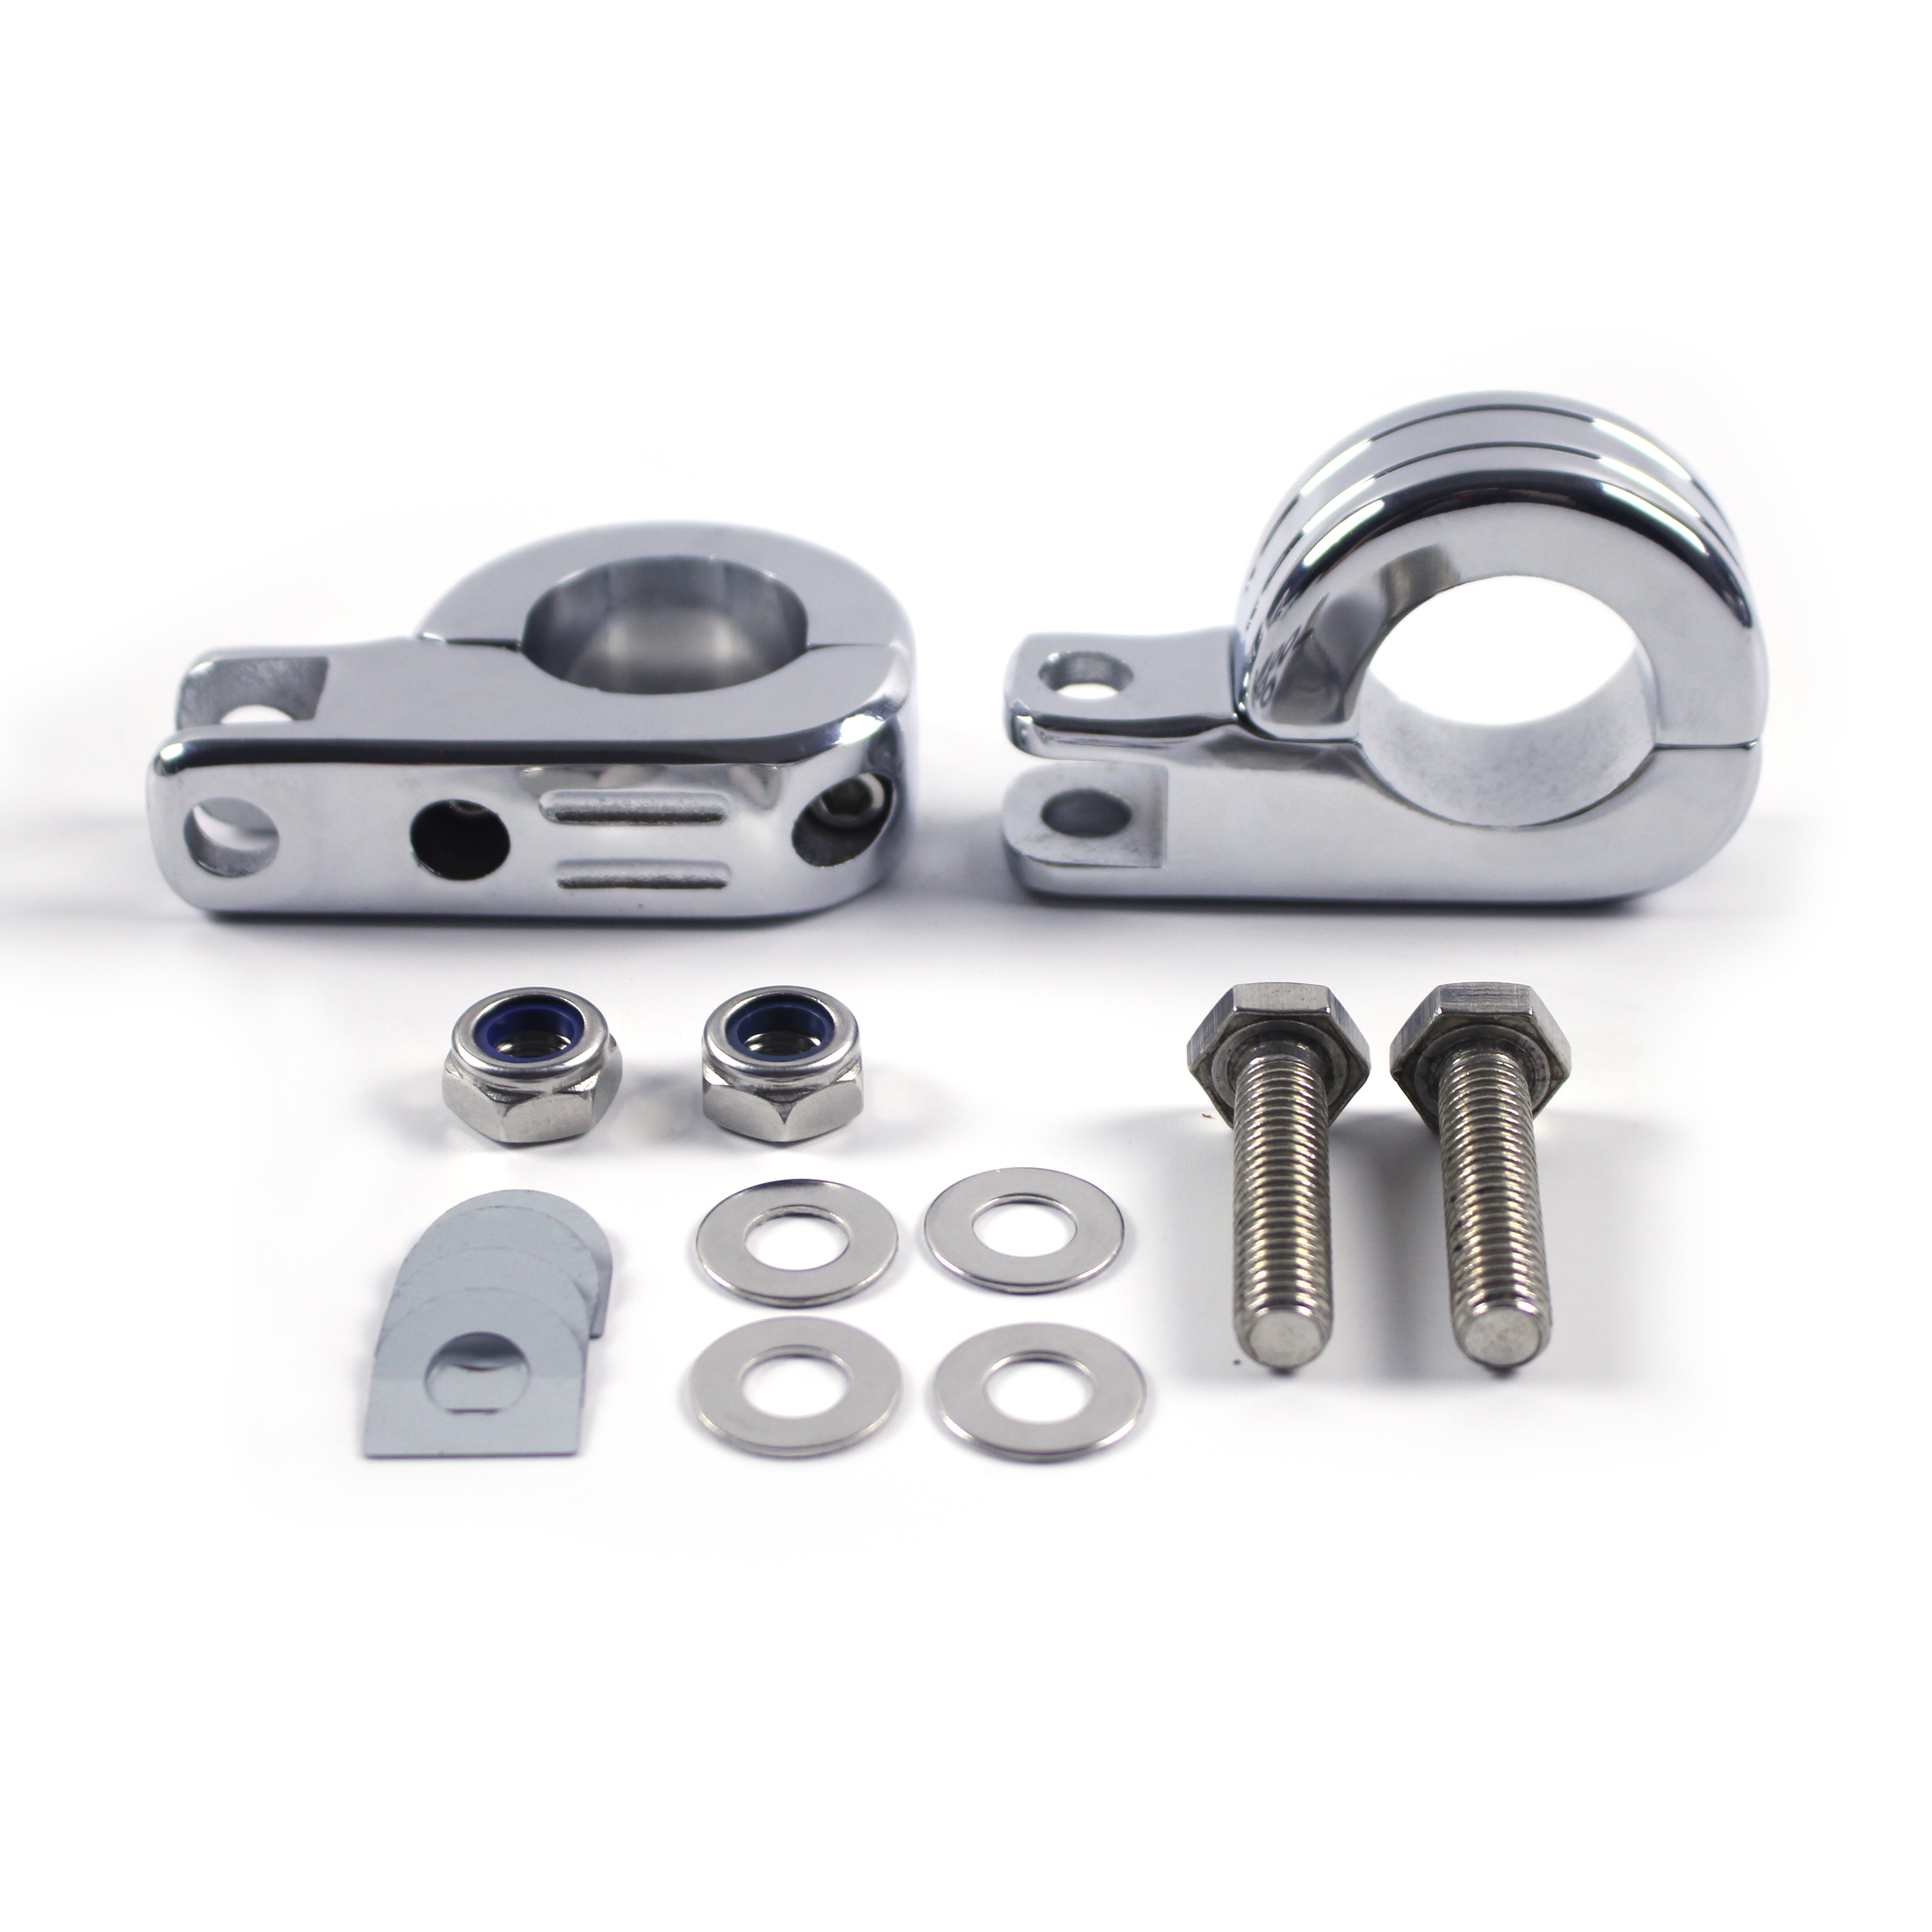 "Free Shipping <strong>Price</strong> Billet Steel <strong>Motorcycle</strong> Foot Pegs Footrest Clamp For 1 1/4""(32mm) Engine Guard Bars"